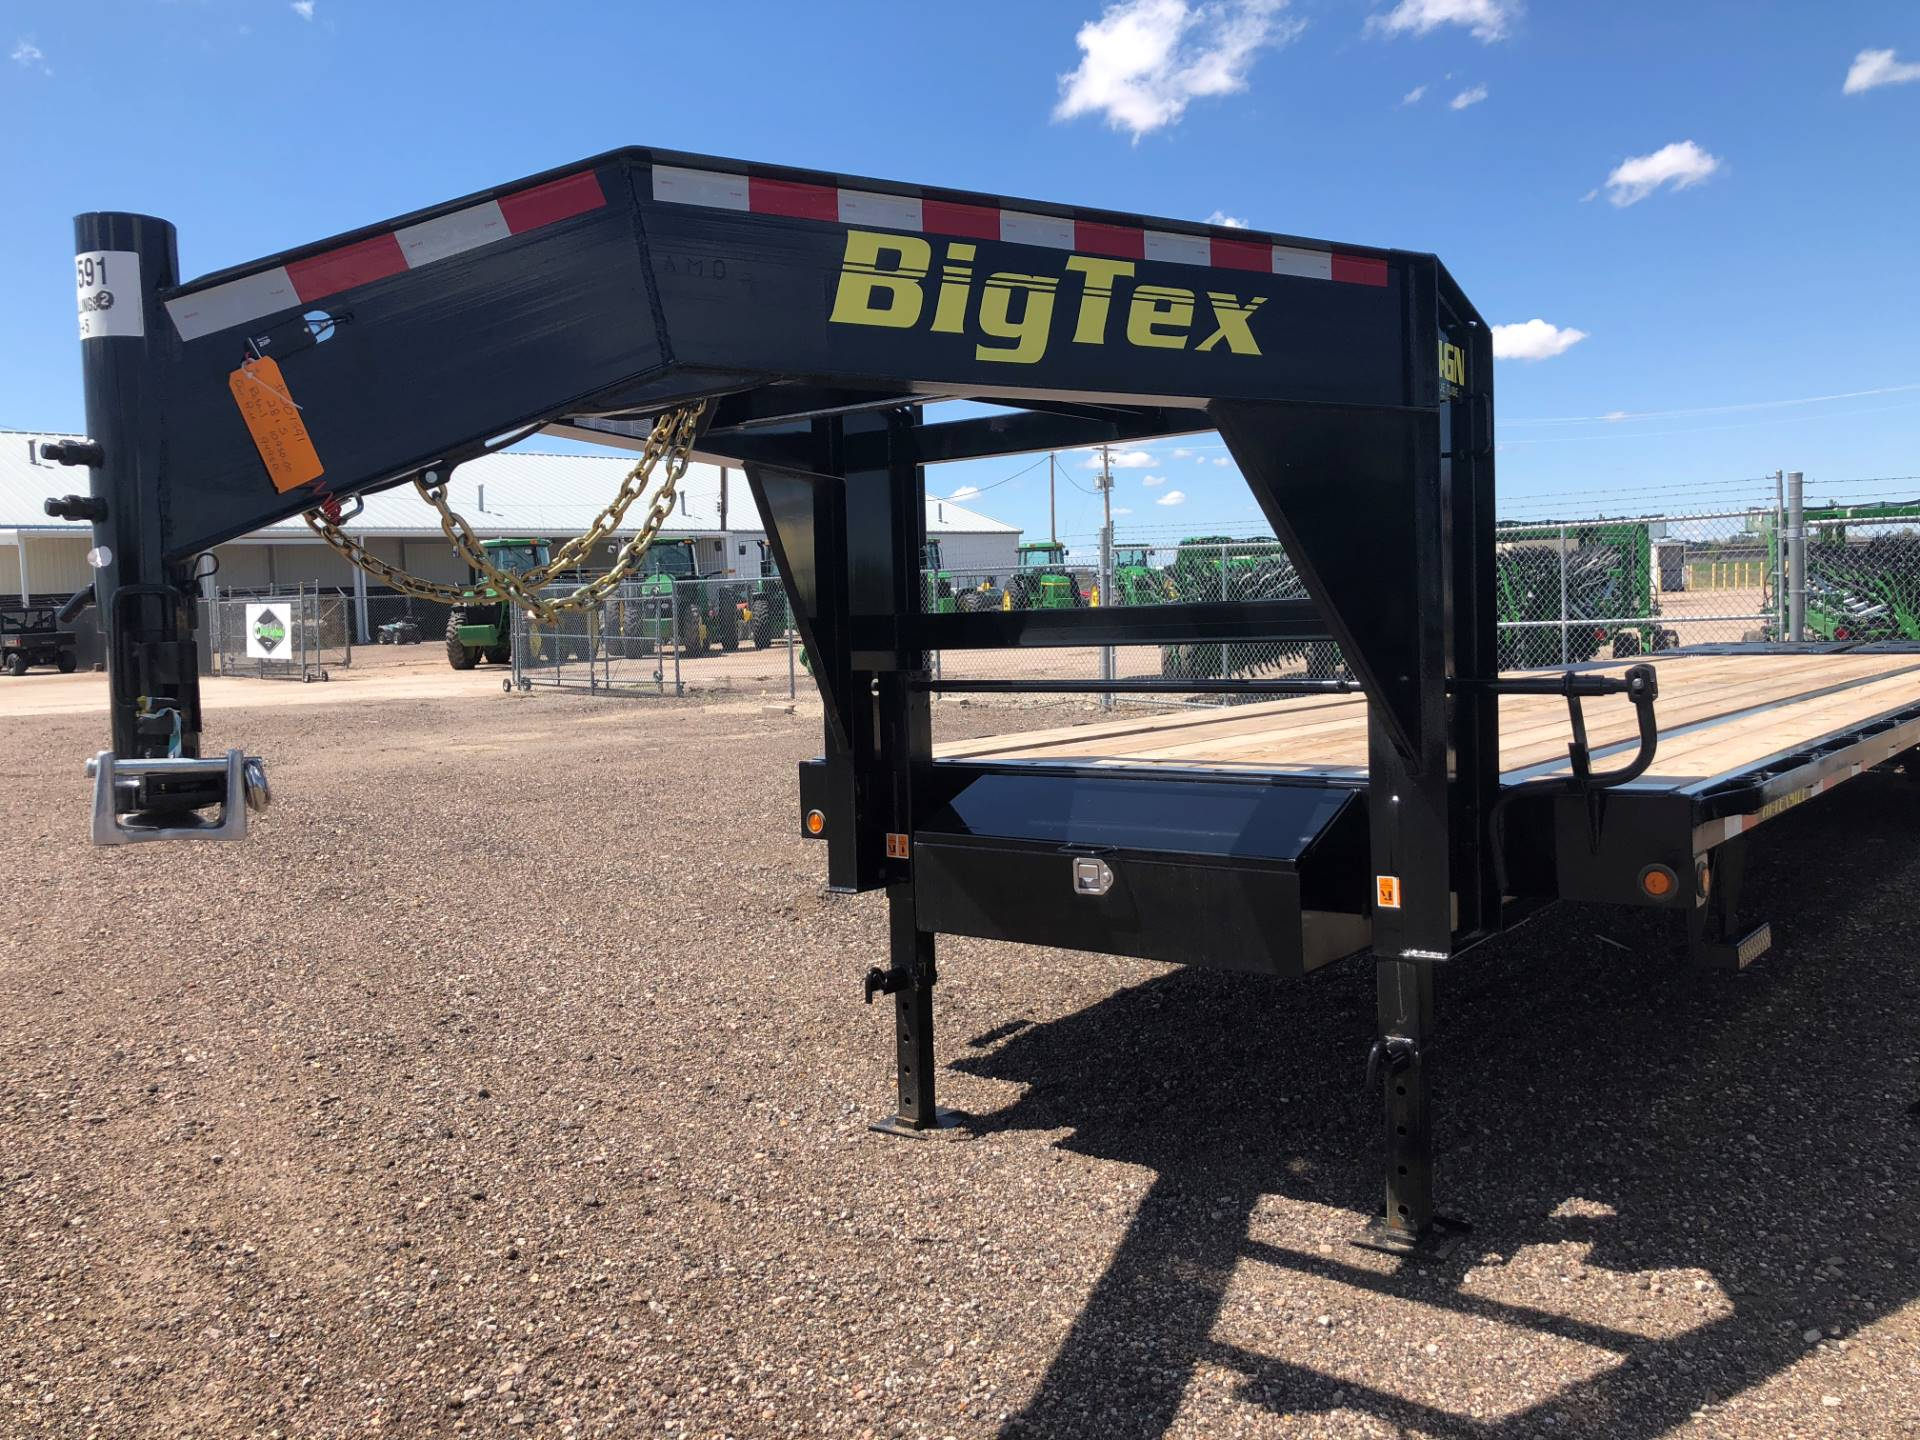 2018 Big Tex Trailers - Manufacturers 28' GOOSENECK in Scottsbluff, Nebraska